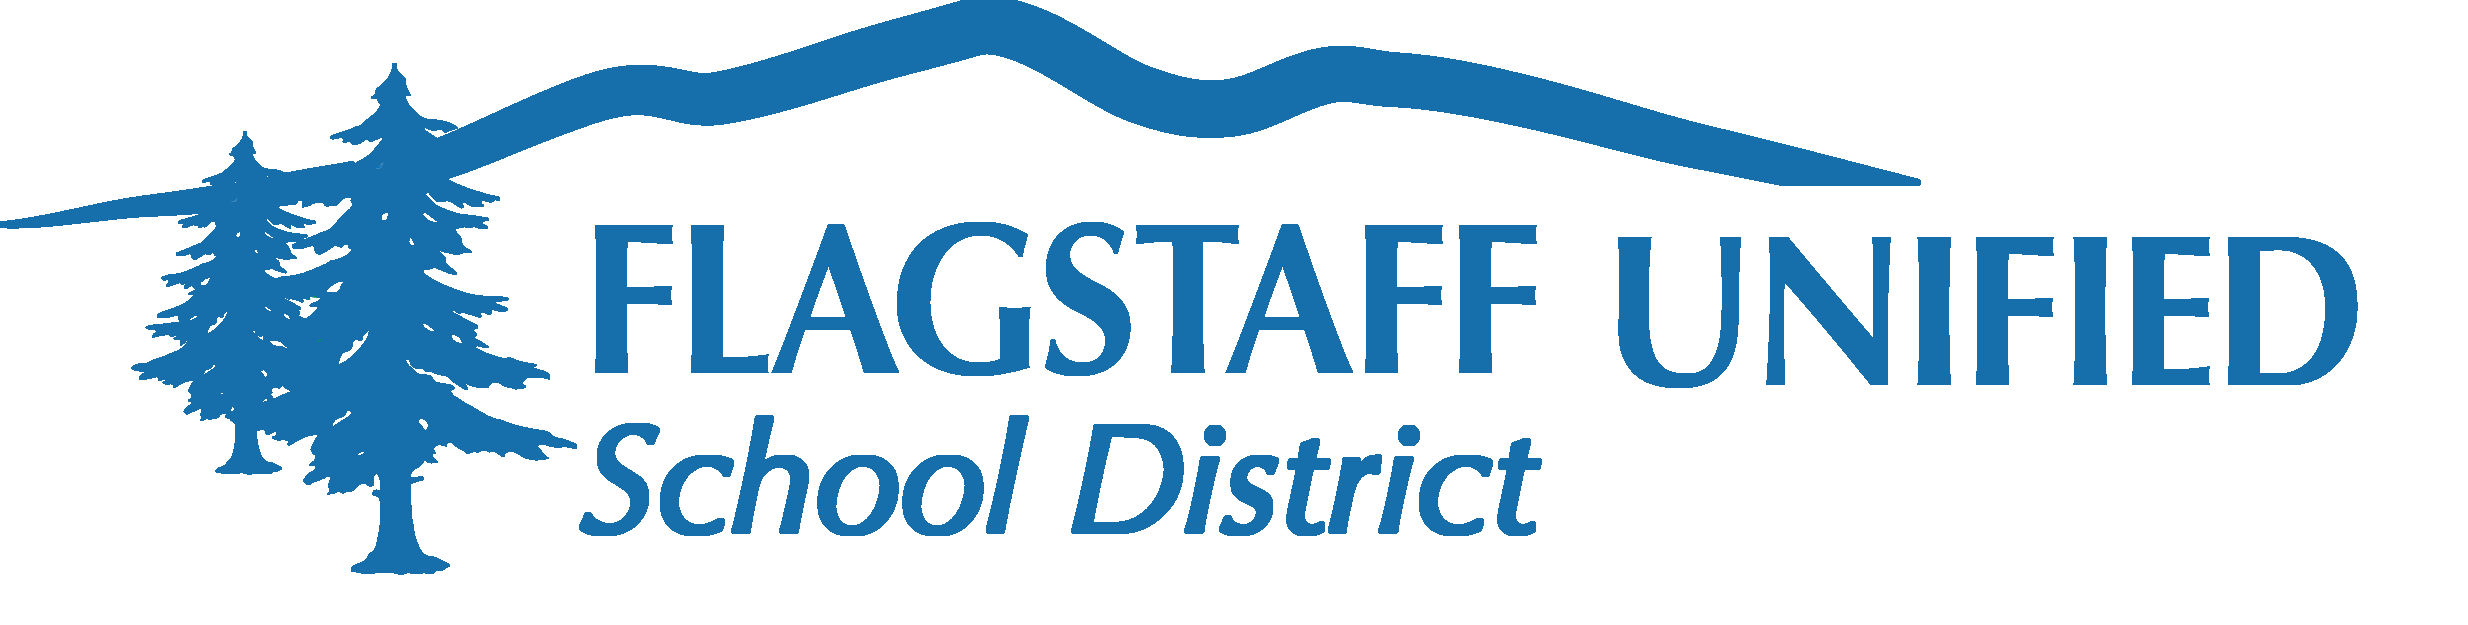 Flagstaff Unified School District / Overview